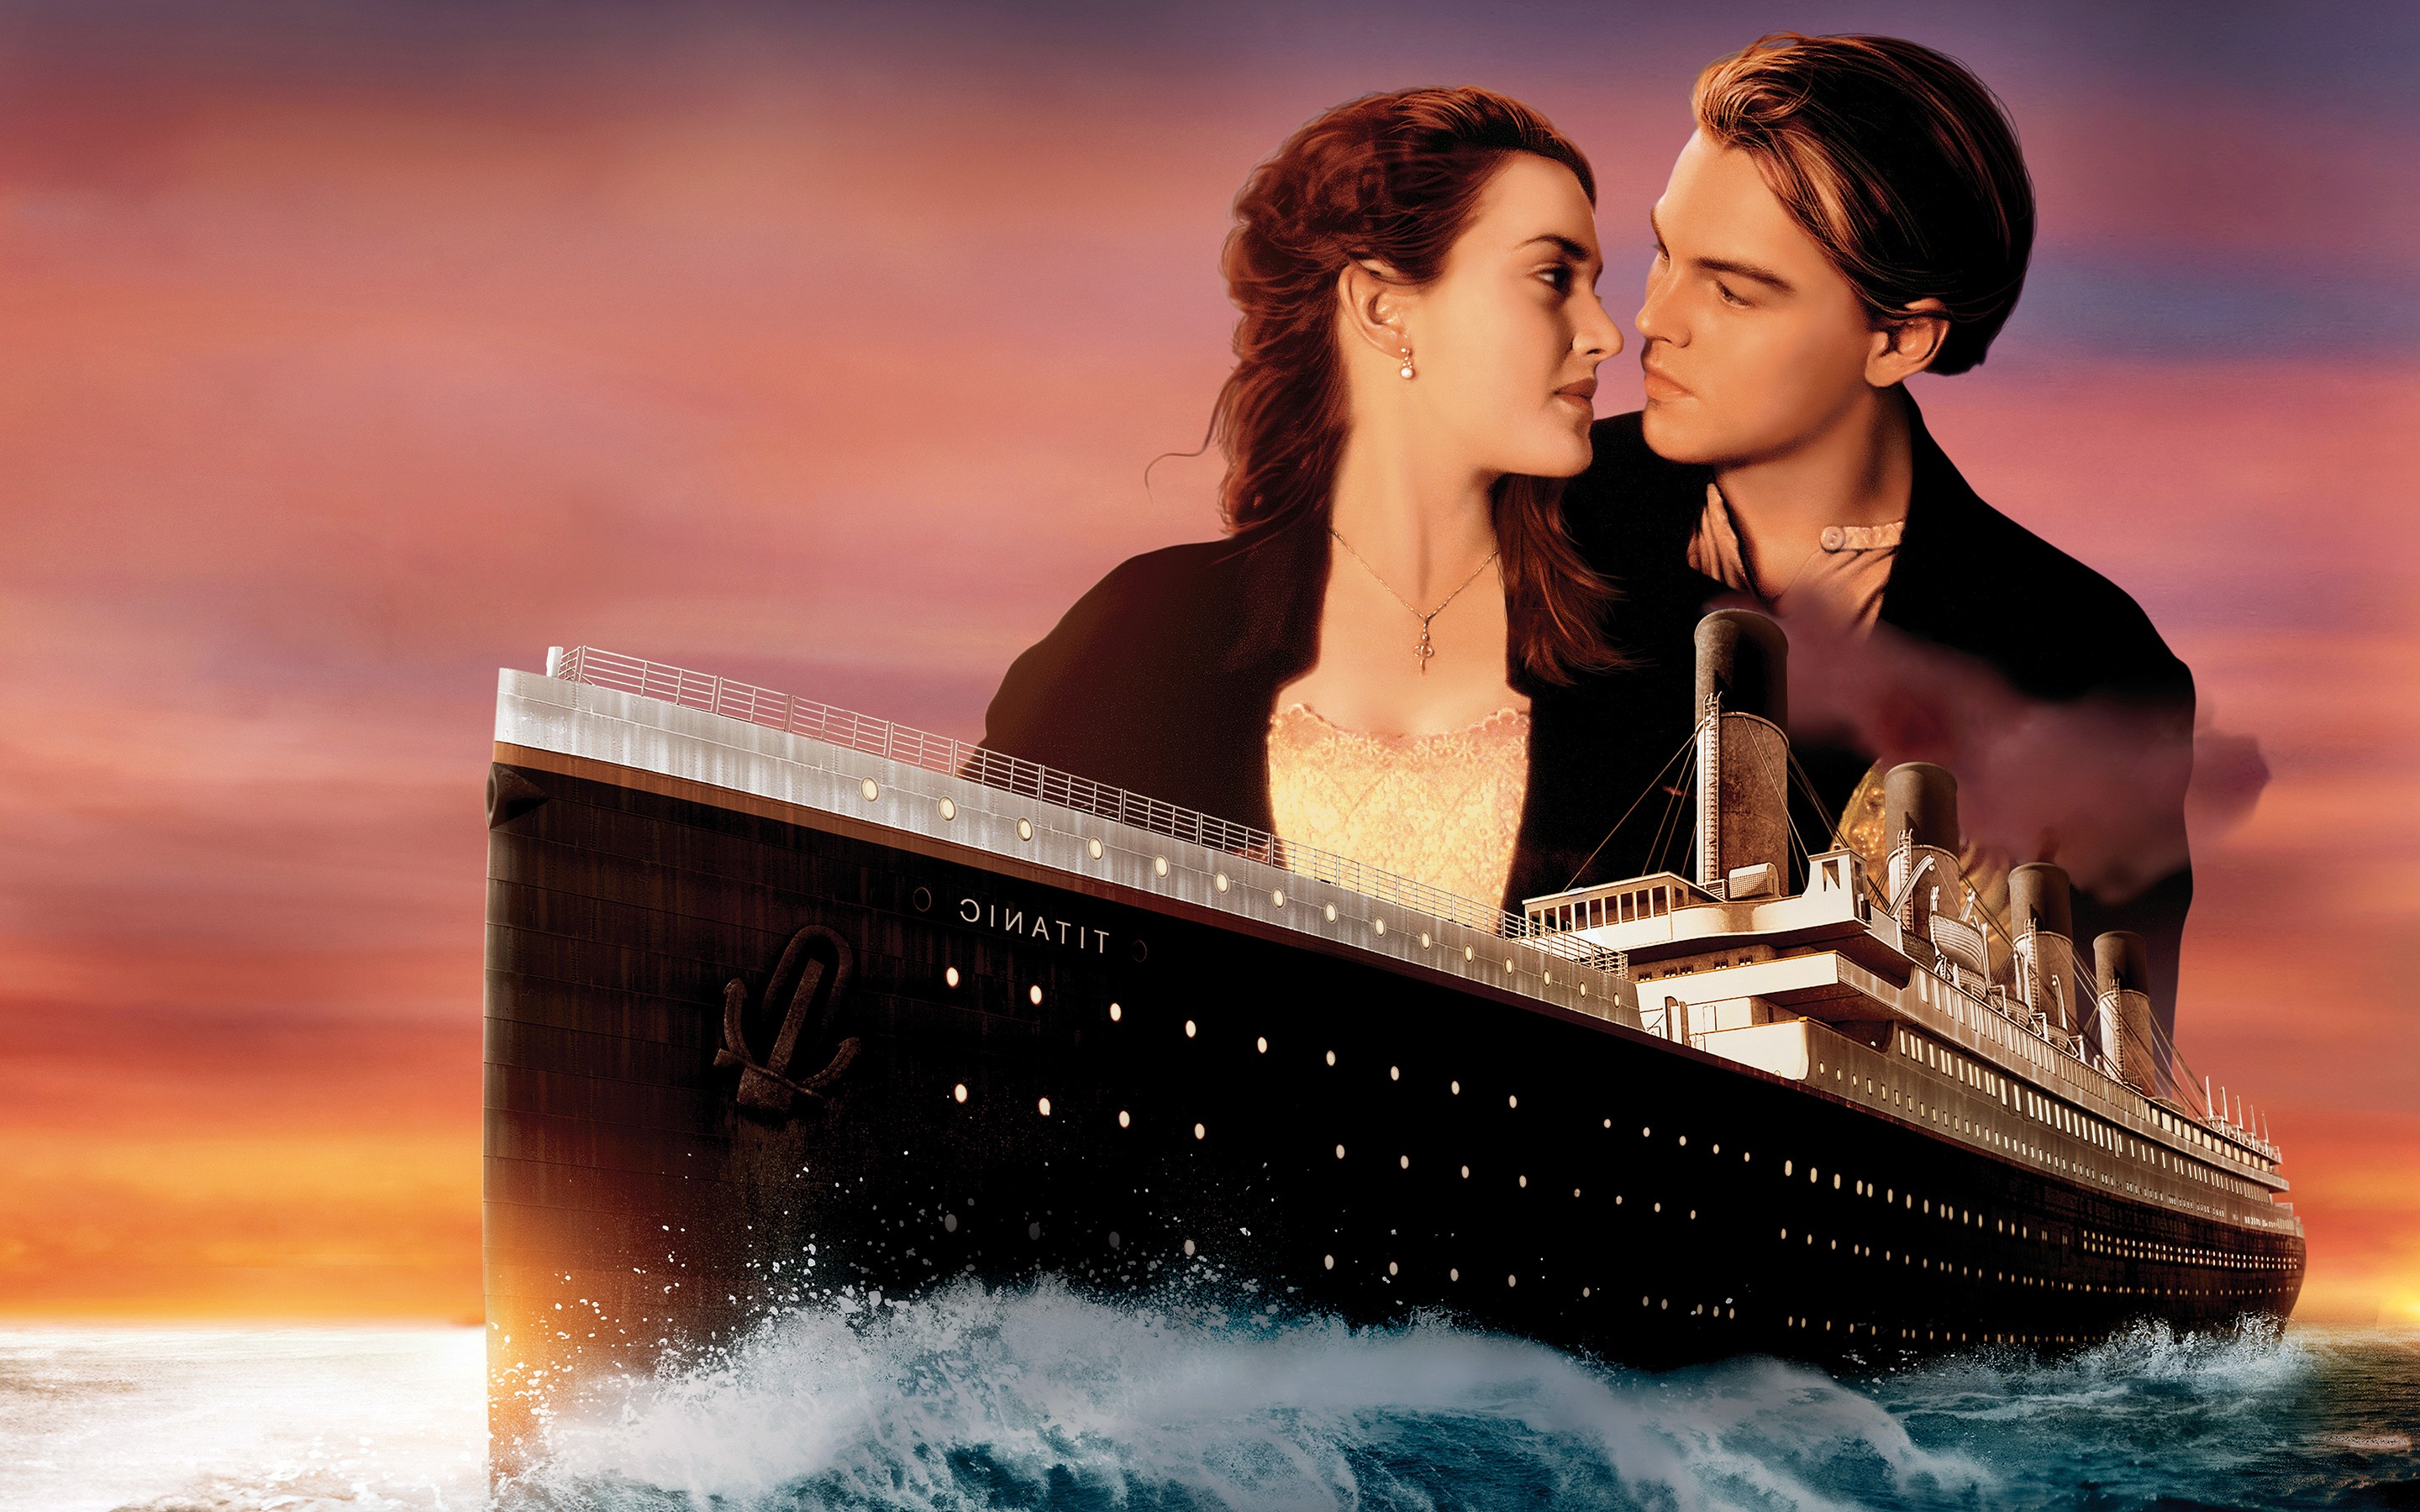 Titanic Movie Full HD Wallpaper | Movies HD Wallpapers